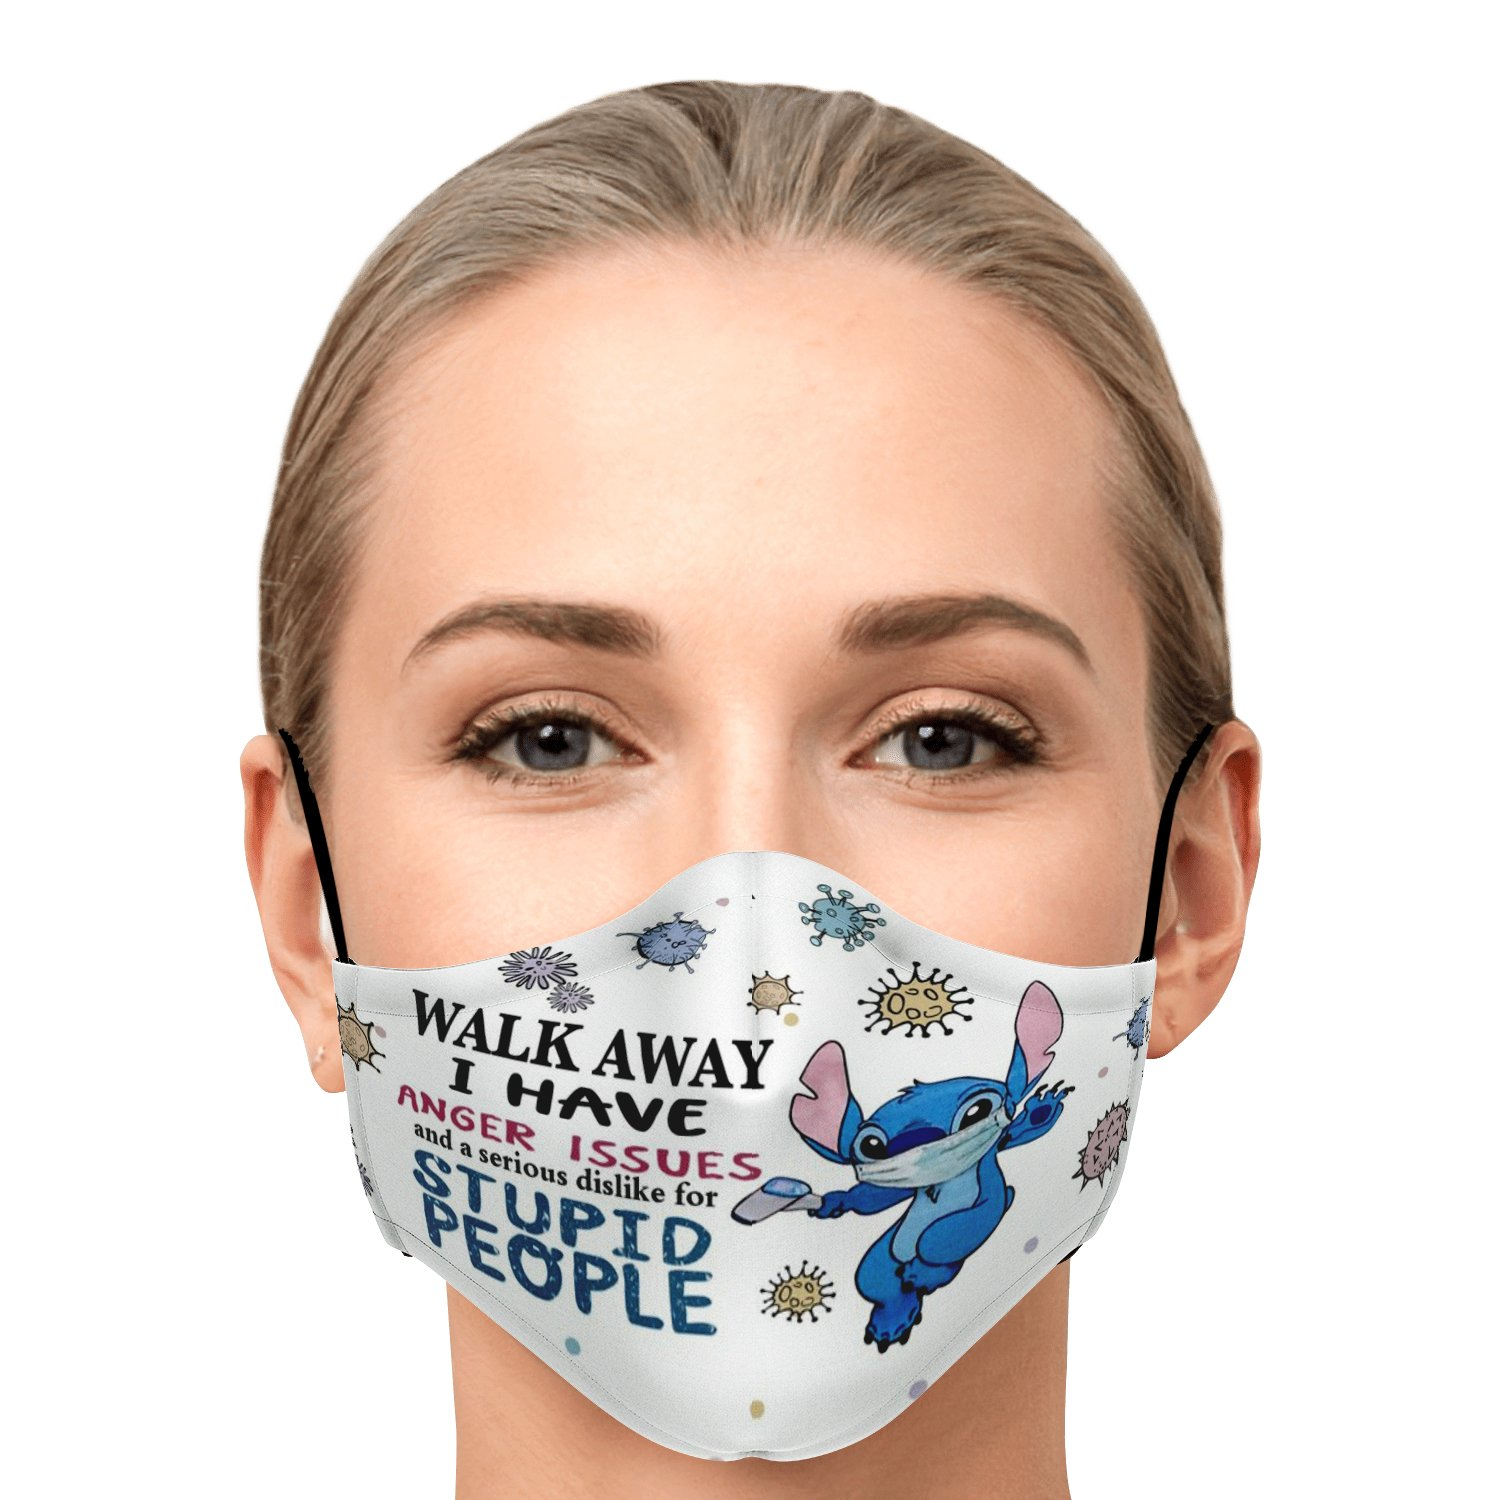 Serious Dislike For Stupid People Covid-19 Stitch Face Mask 1